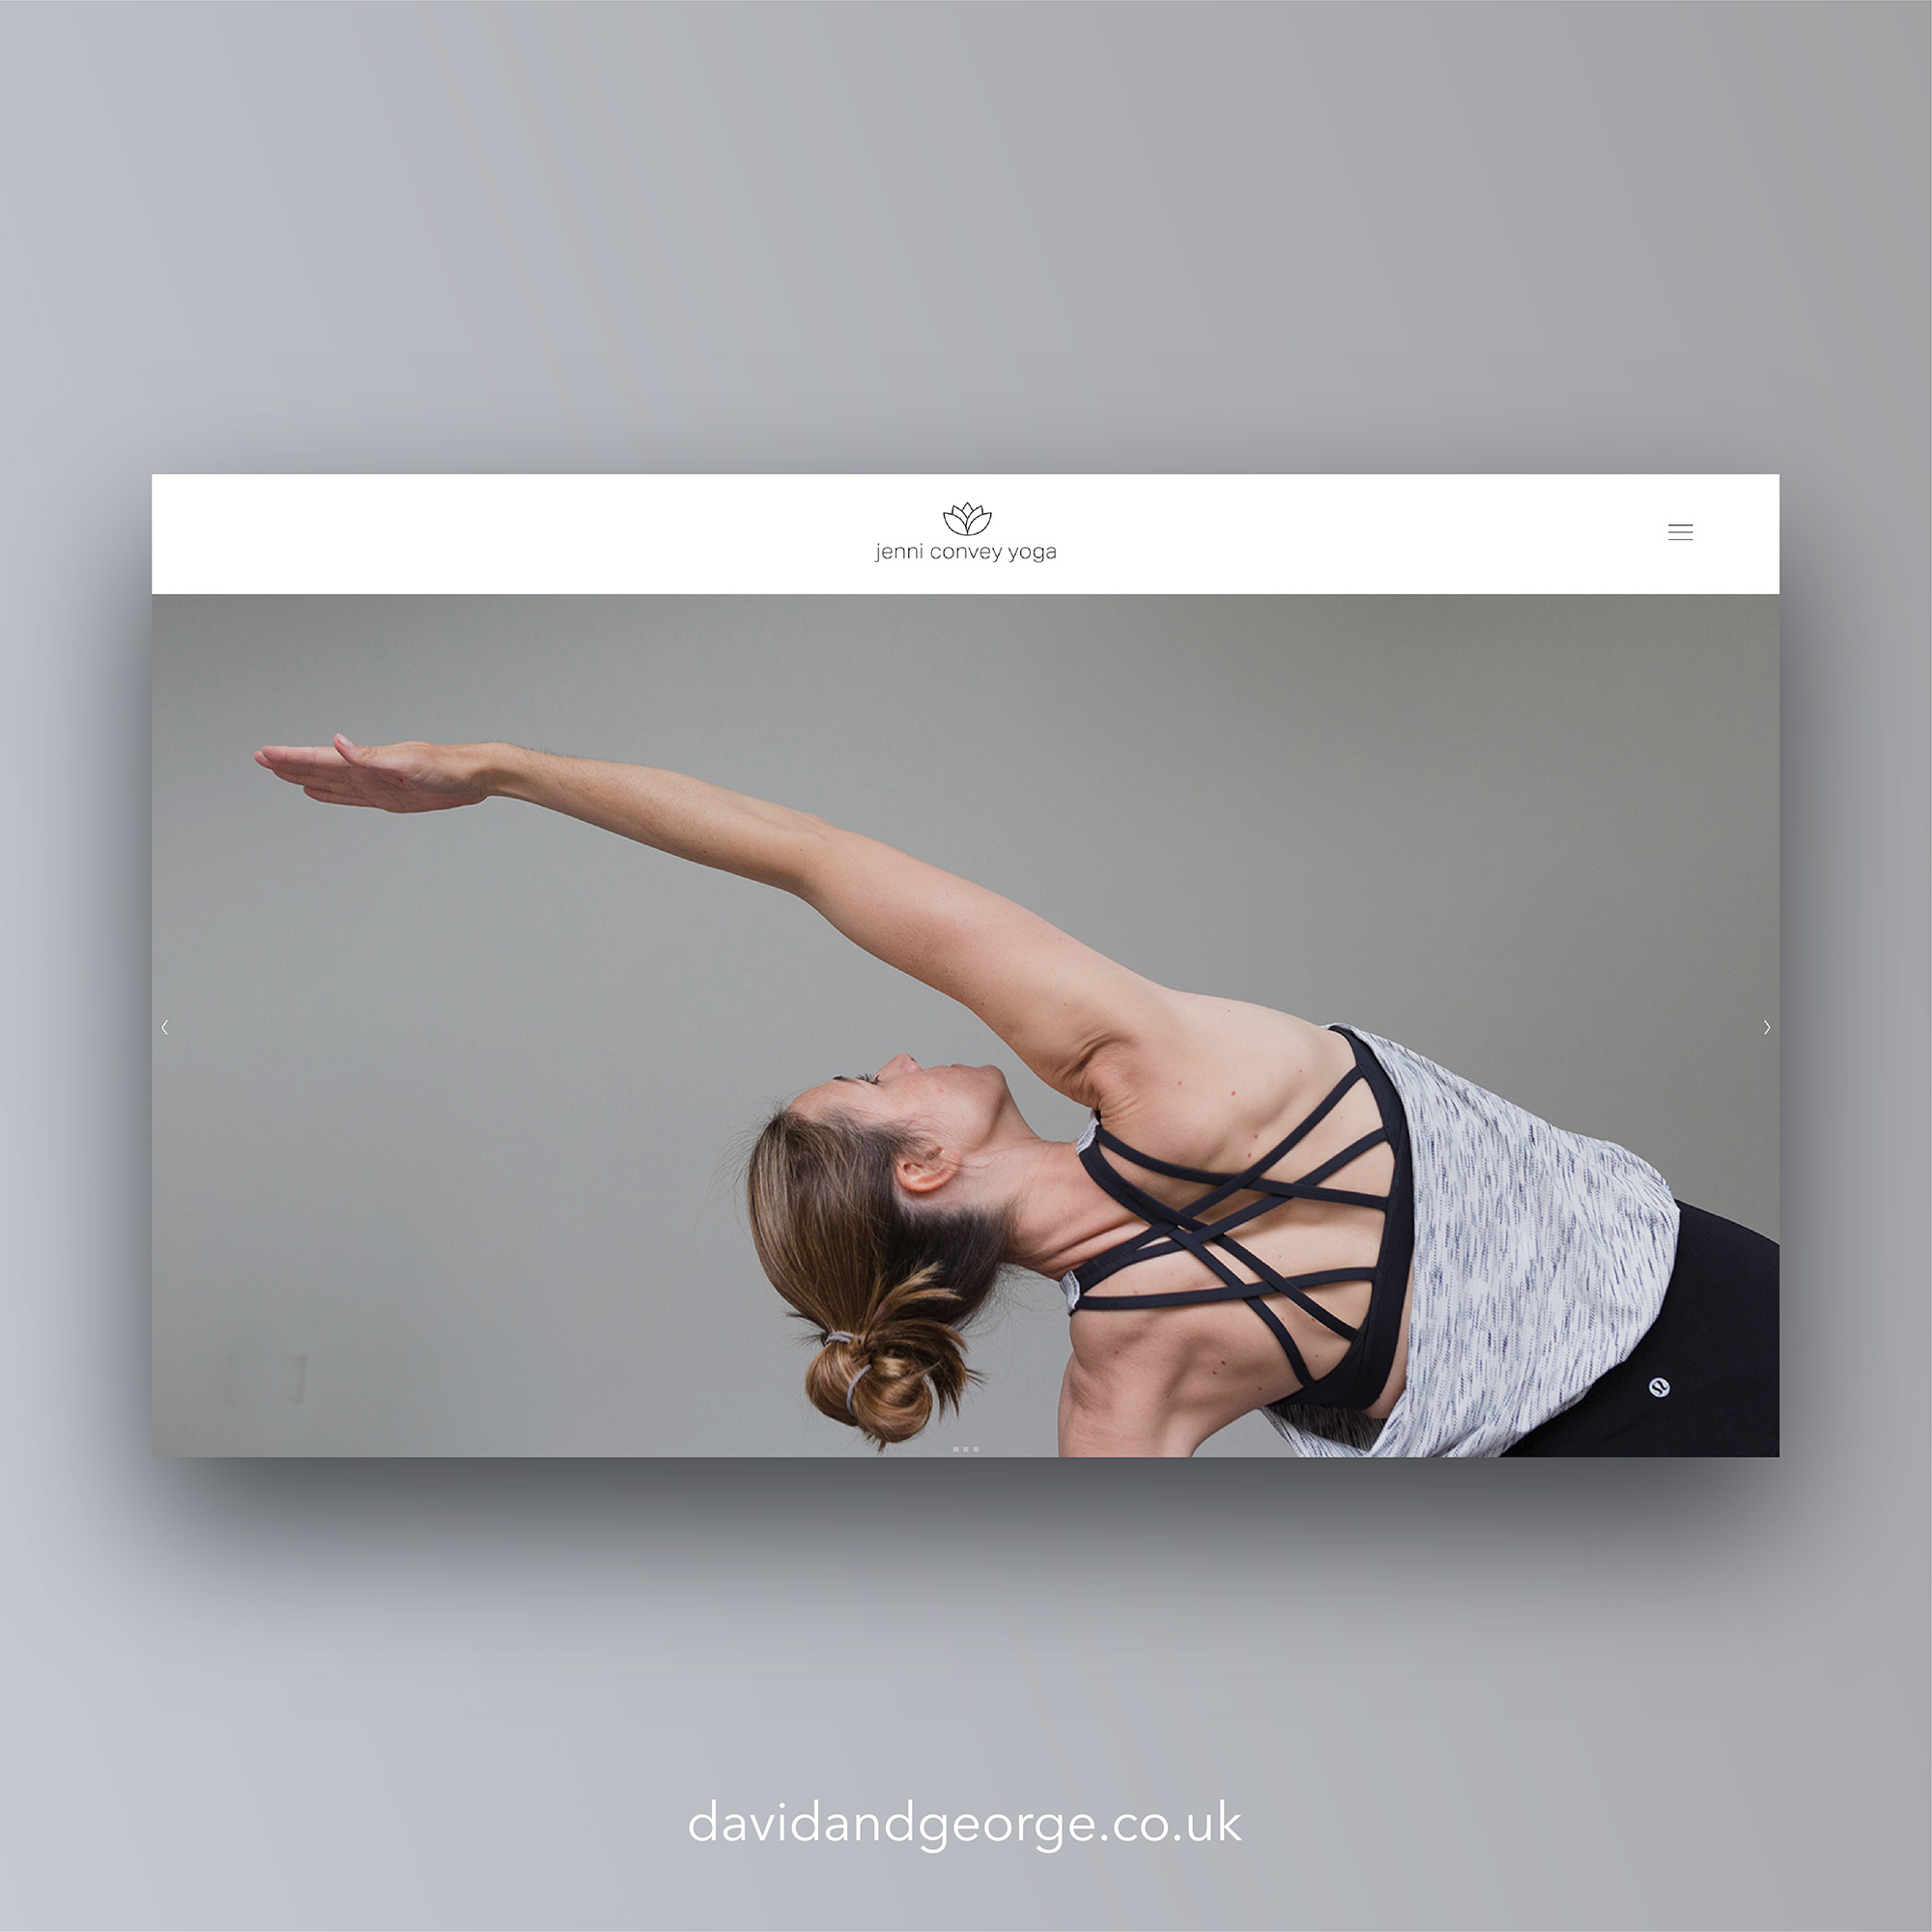 squarespace-website-design-london-edinburgh-uk-david-and-george-jenni-convey-yoga-service.jpg